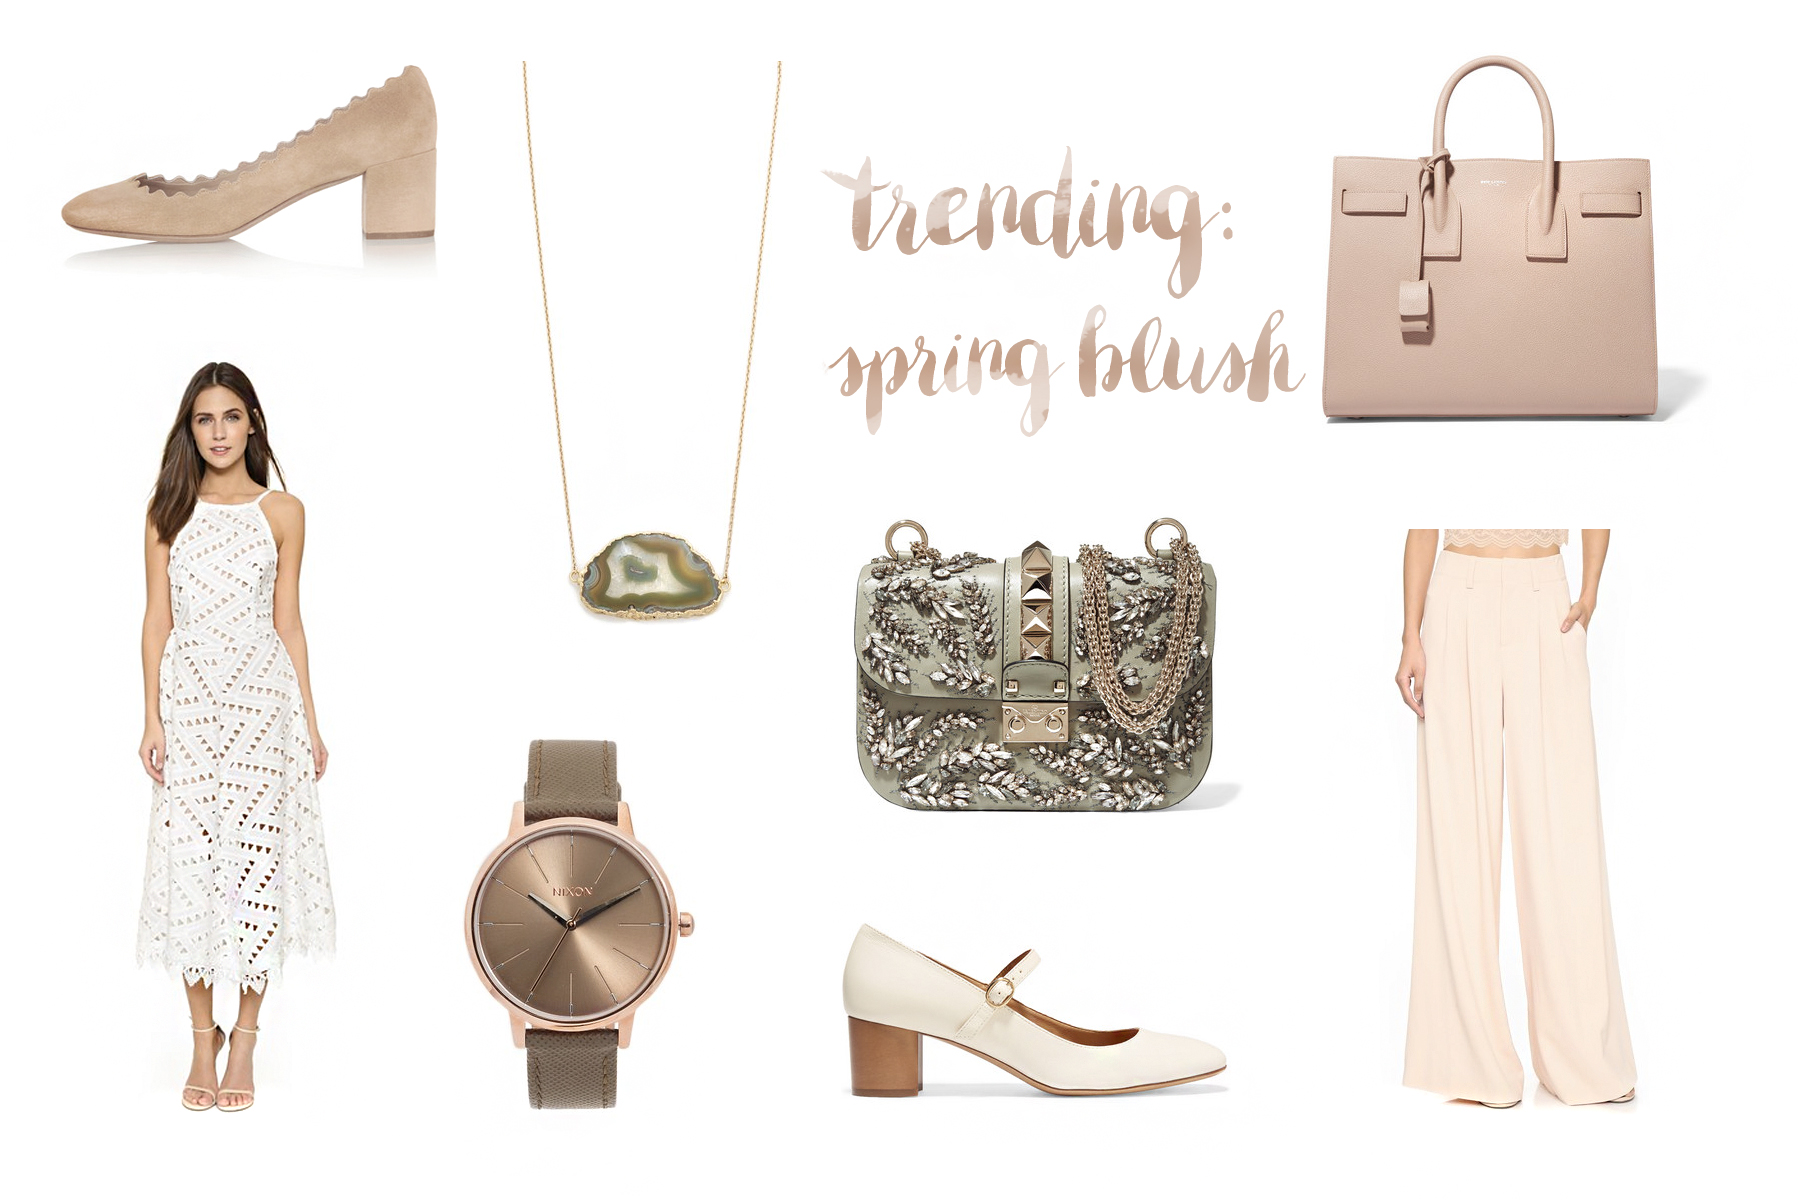 inspiration spring blush light color trends shopping valentino saint laurent luxury fashion shopbop shopping online nixon chloe isabel marant boutique style look girl elegant chic fashionblogger germanblogger cats & dogs blog ricarda schernus düsseldorf